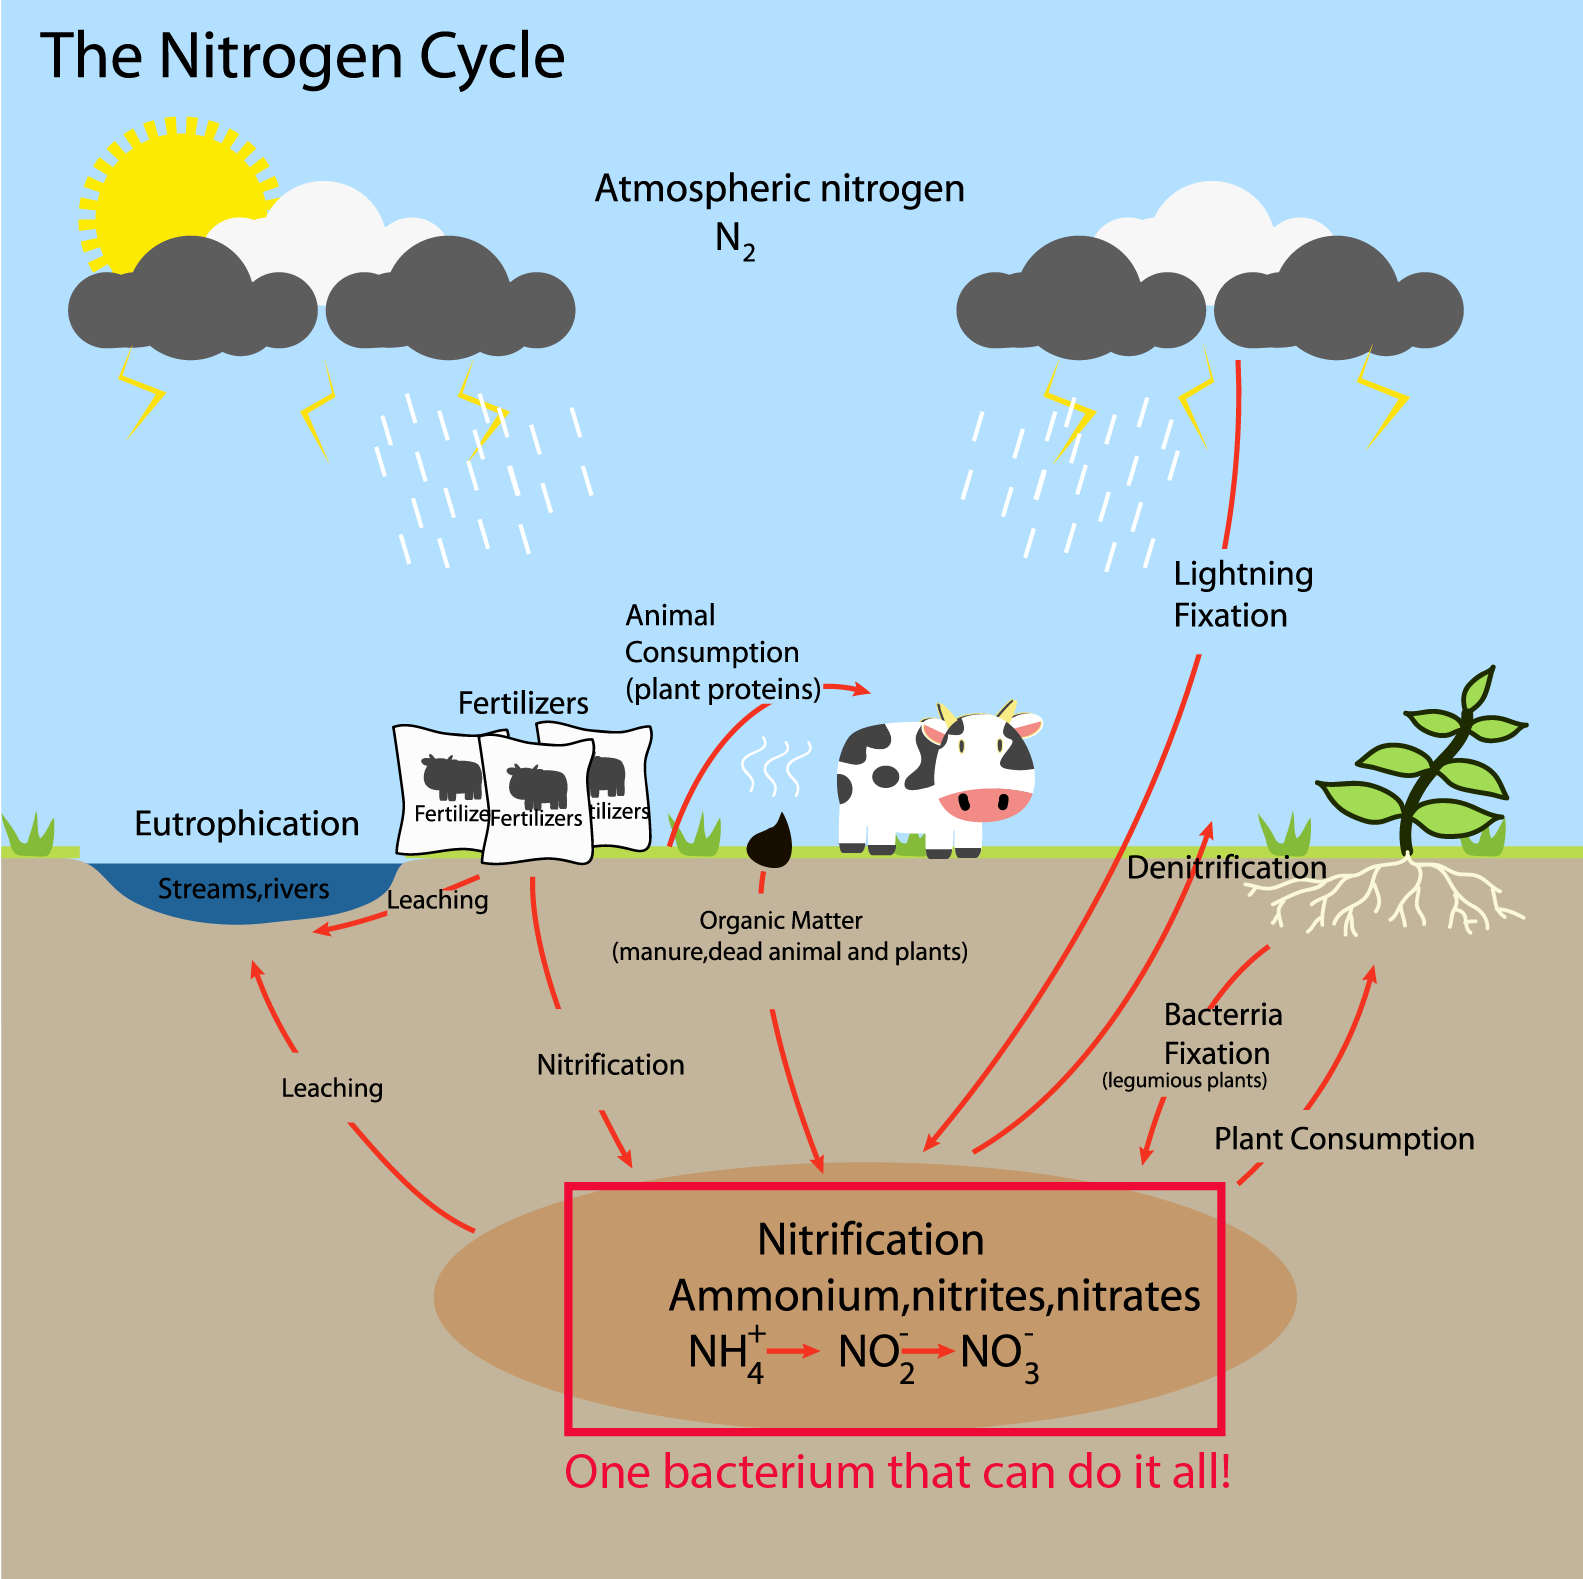 One to tango: a bacterium that does the work of two in the nitrogen cycle